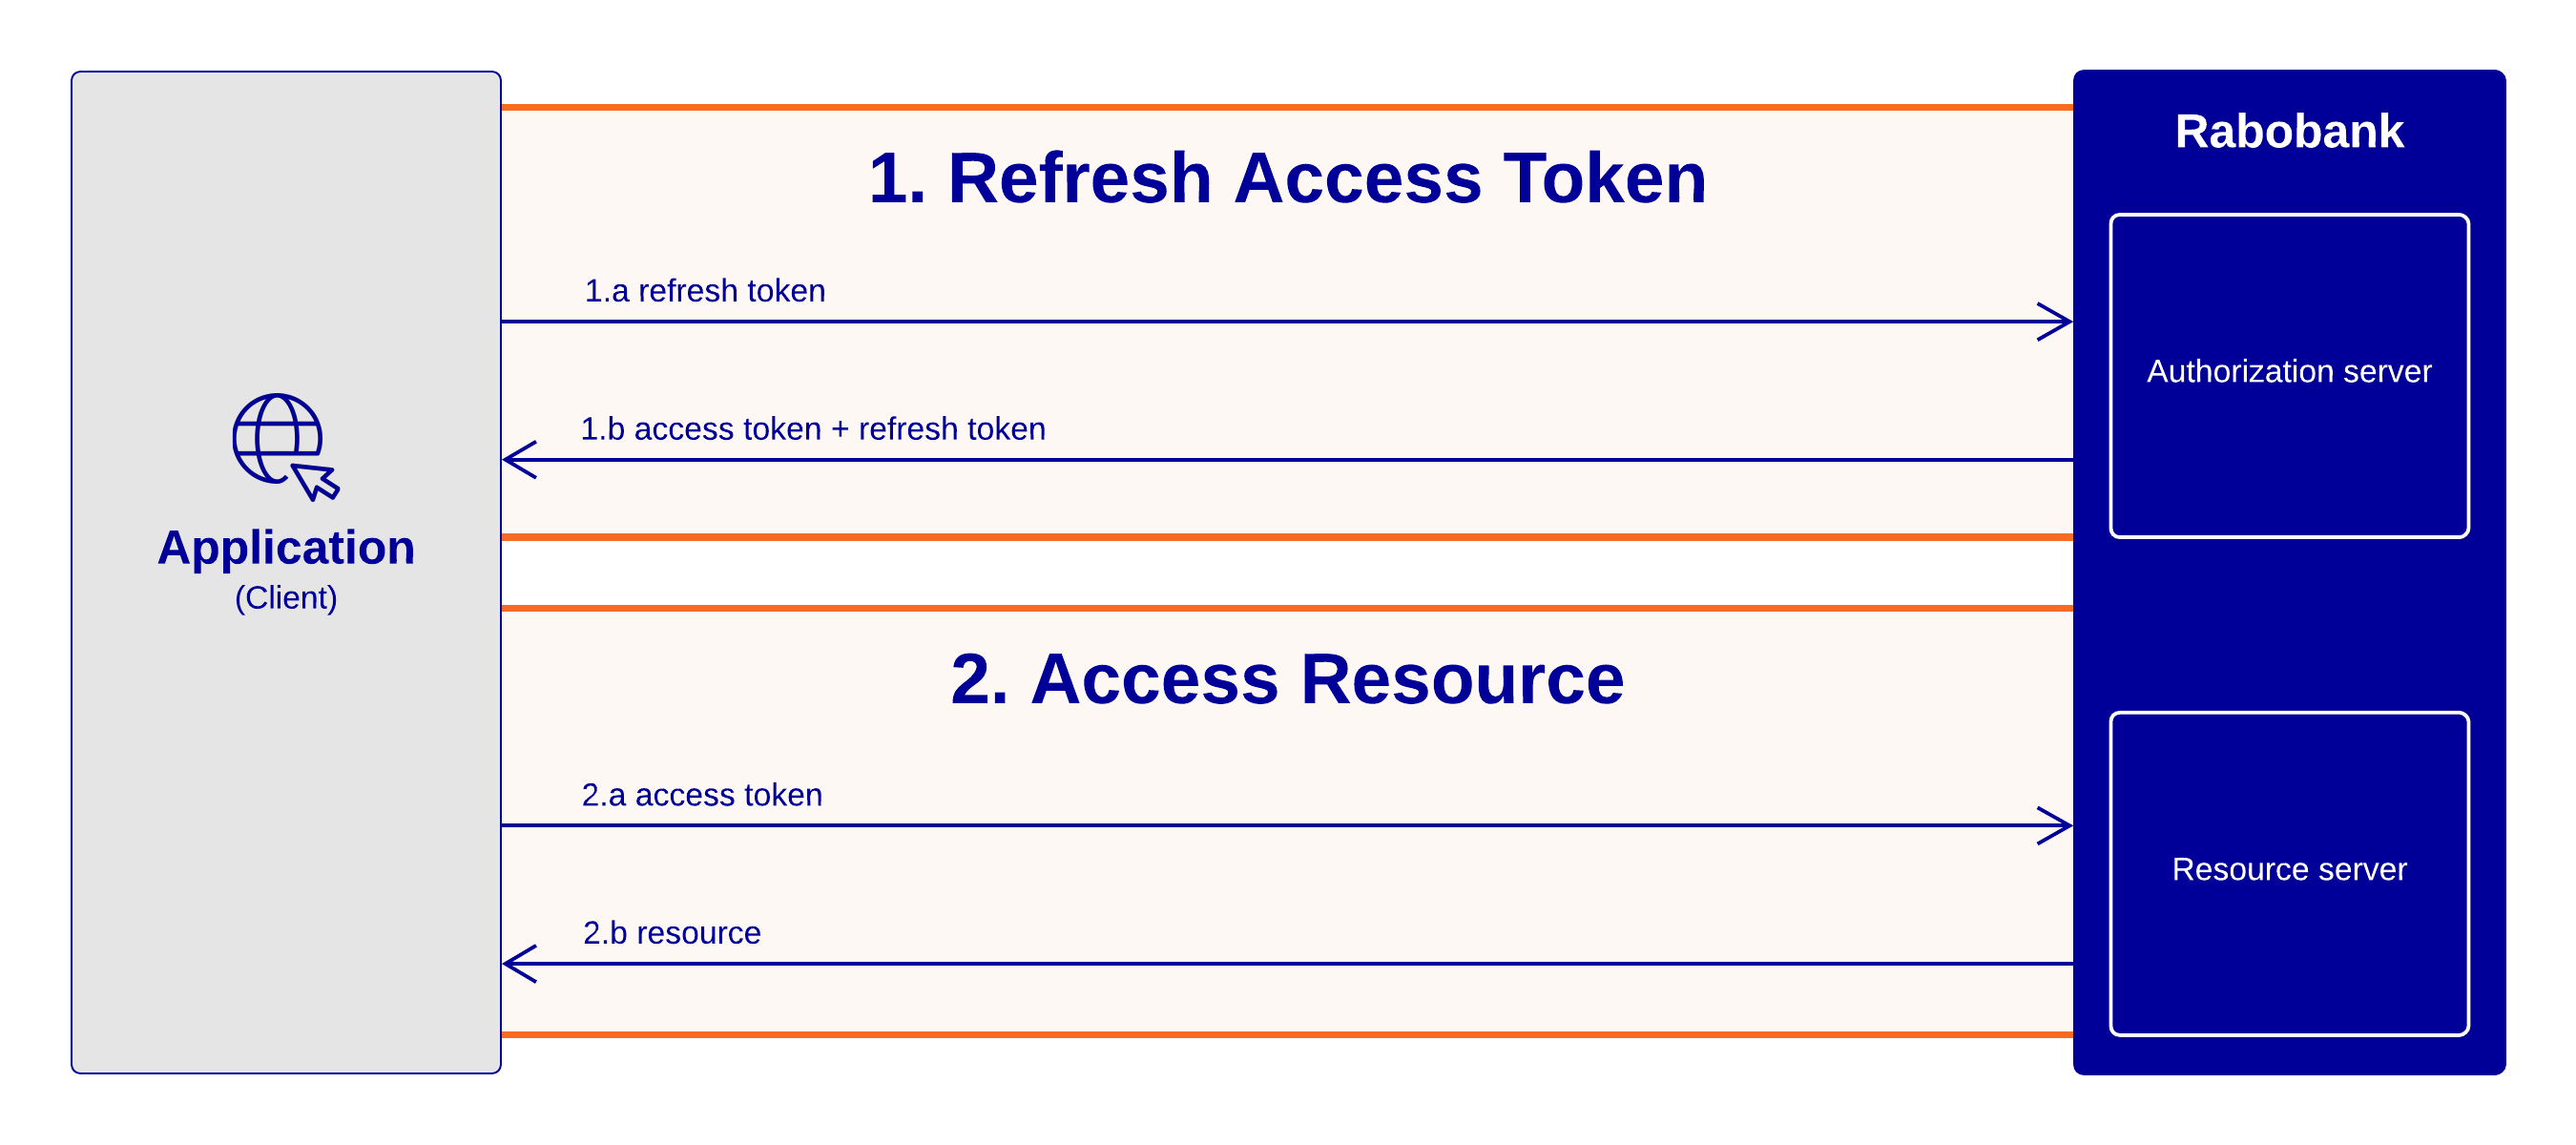 Rabobank OAuth 2.0 Refresh Token flow